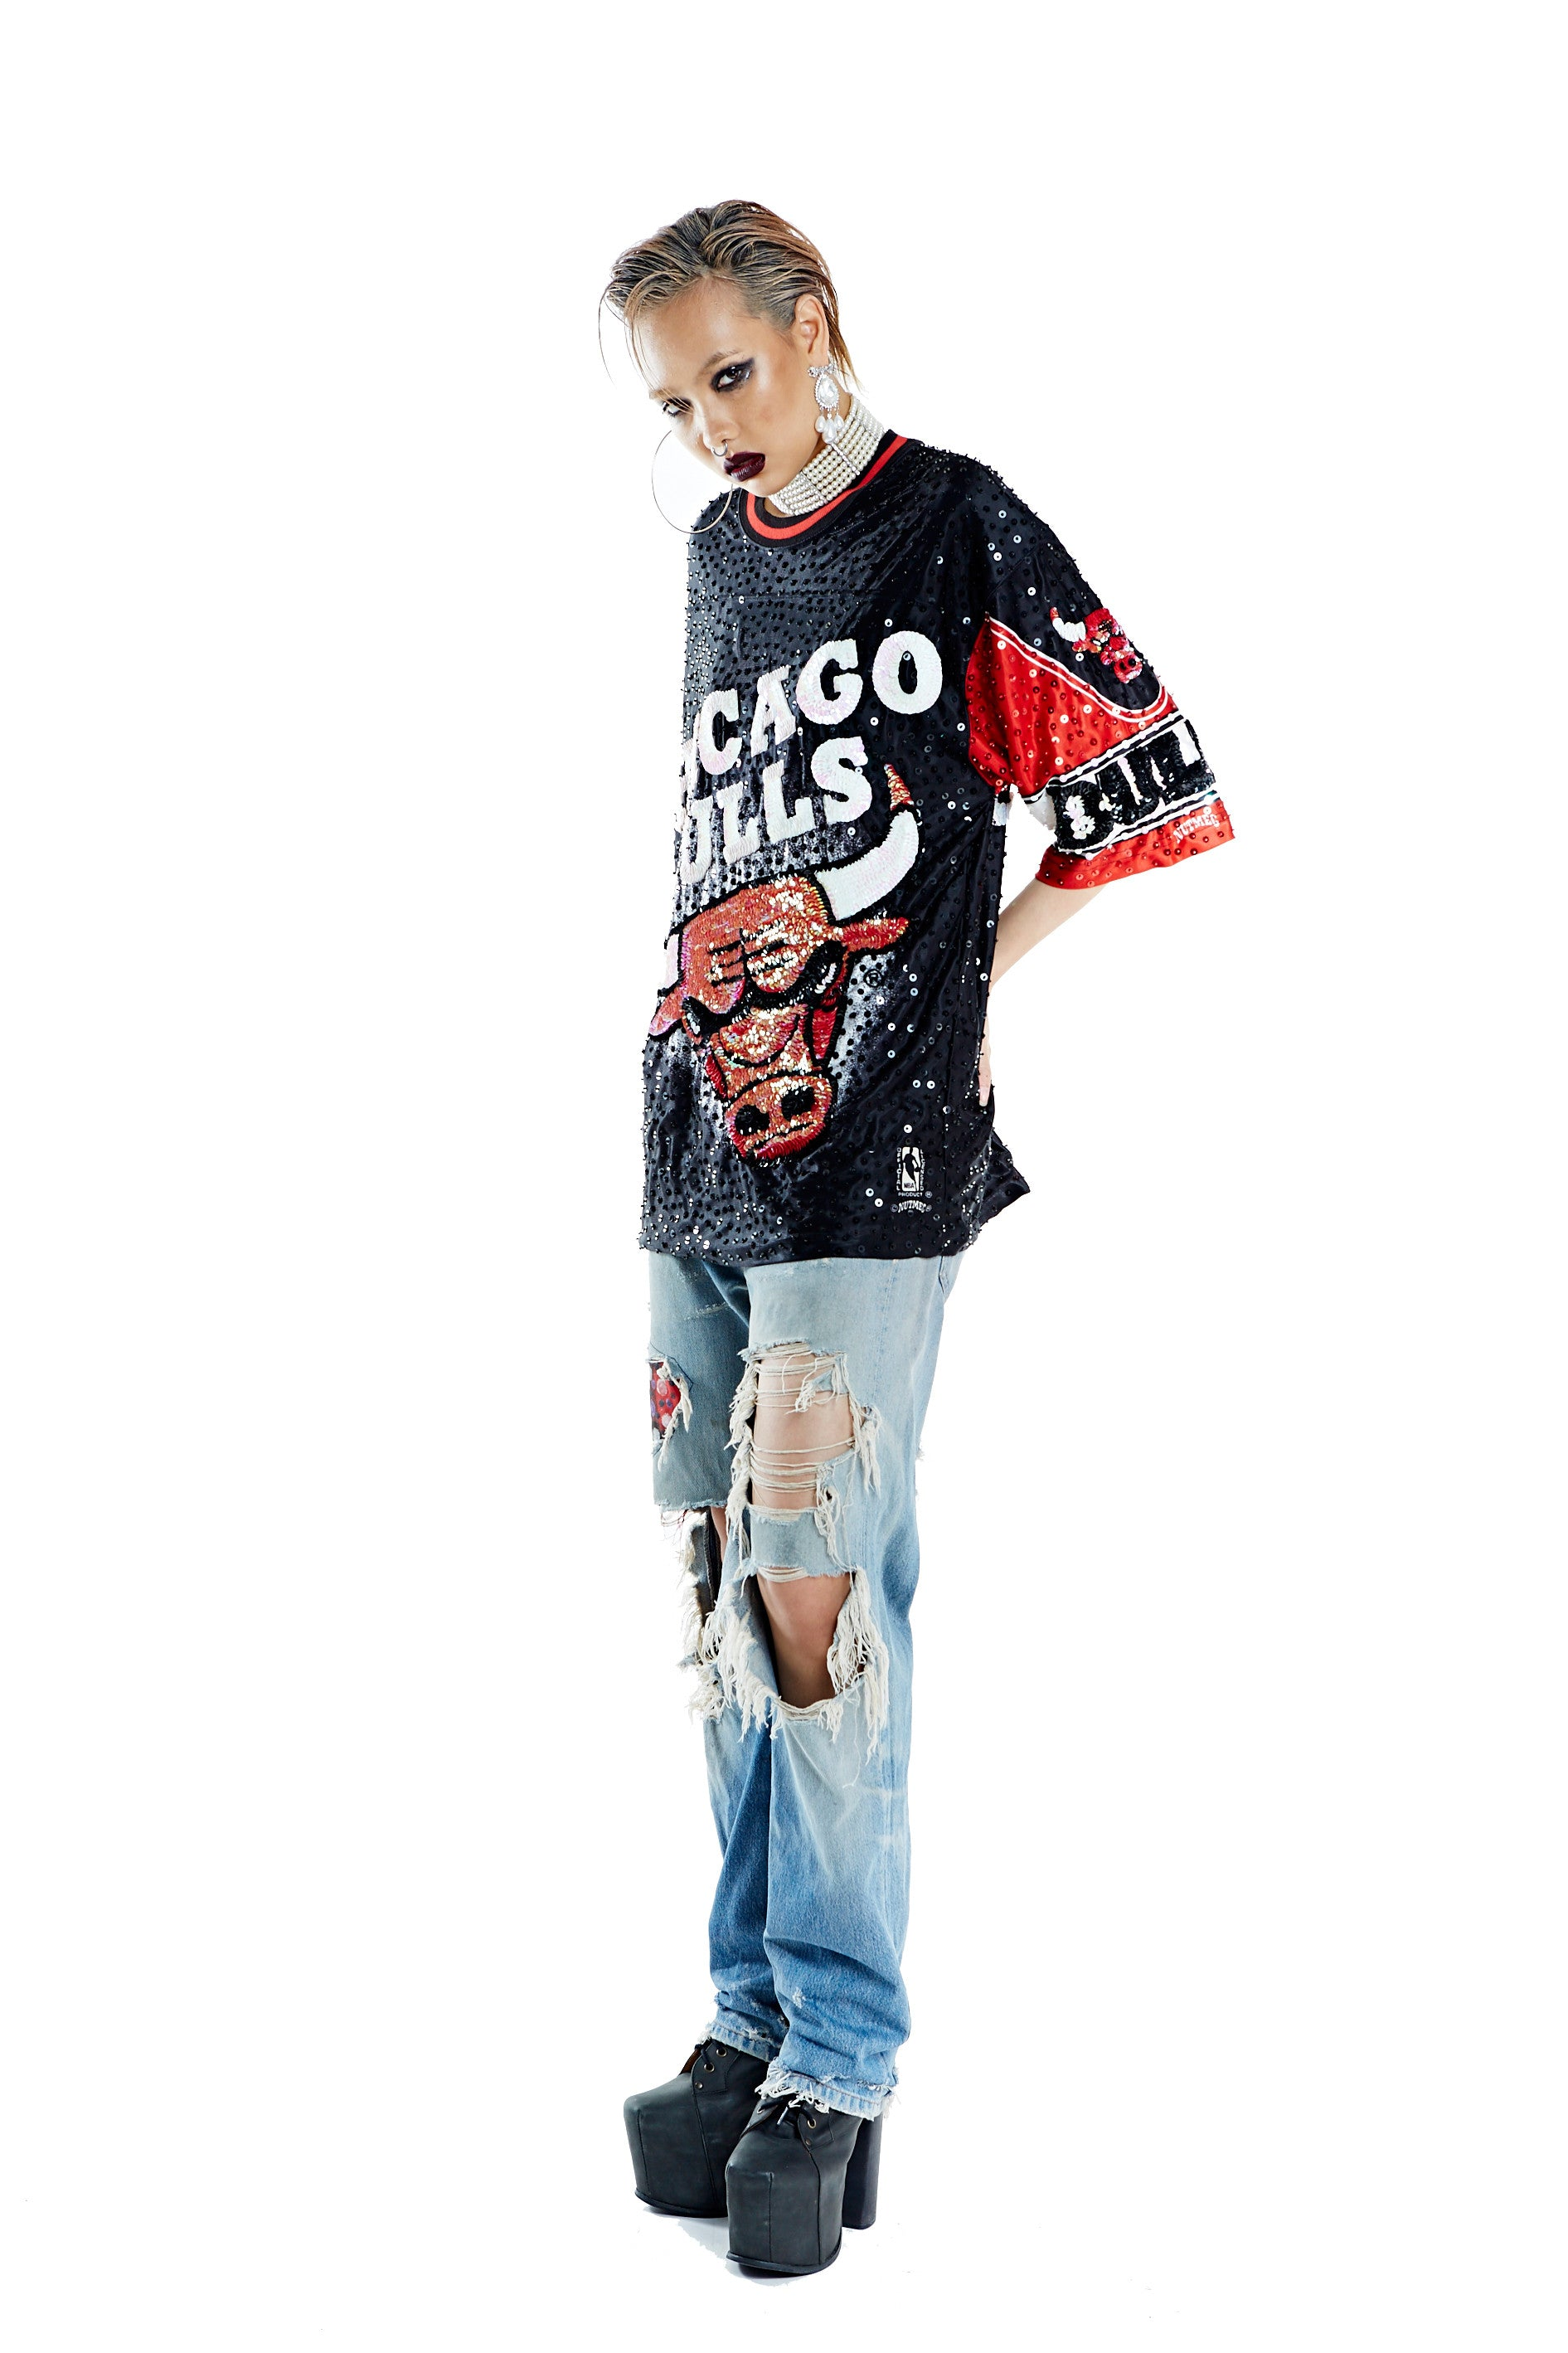 Chicago Bulls Nutmeg Mills Mod Top - I LOVE DIY by Panida